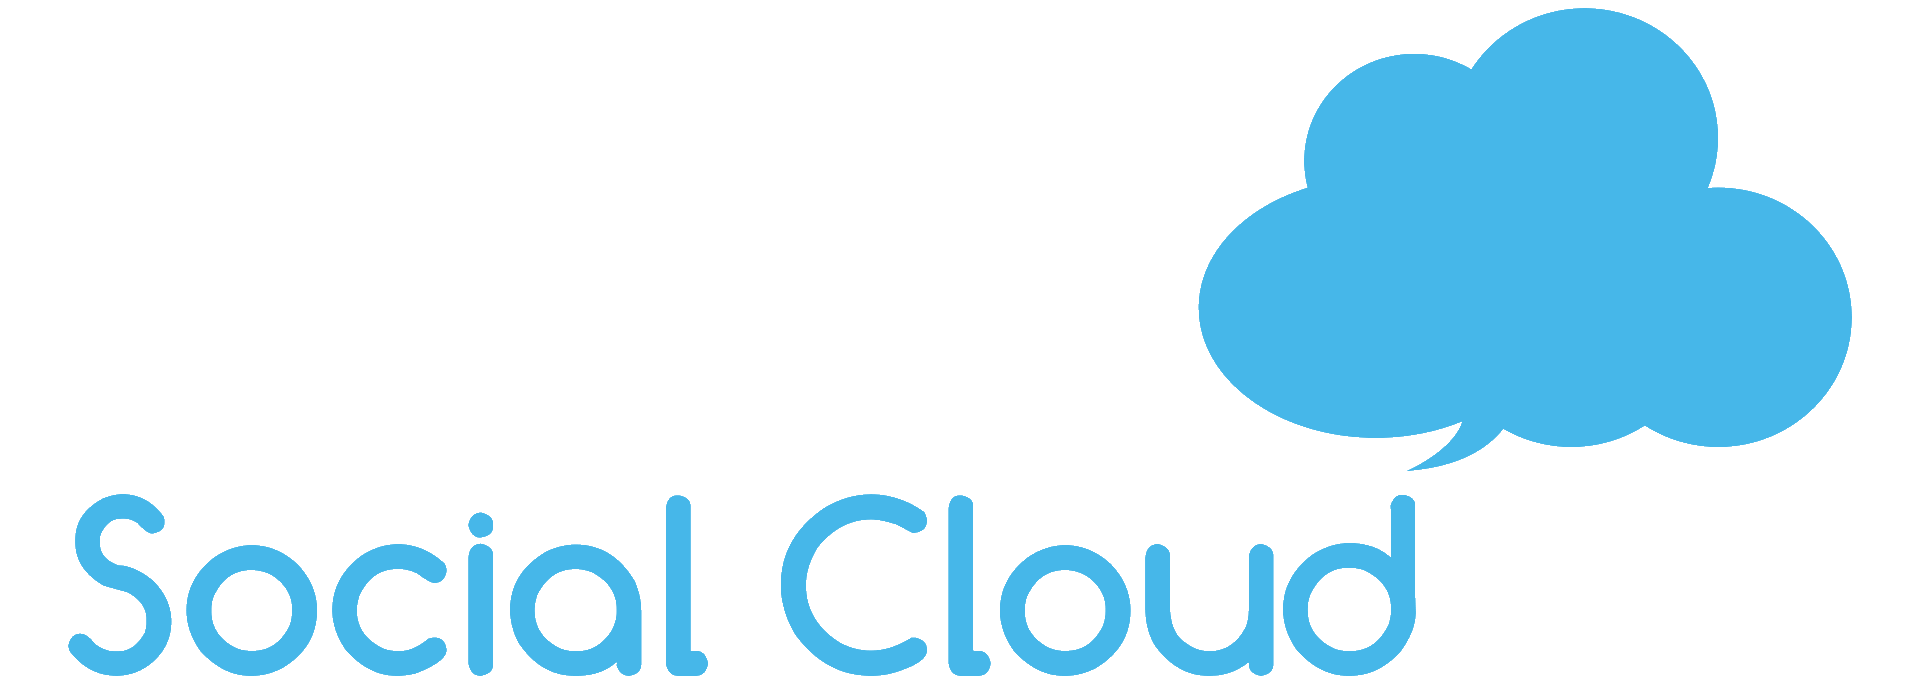 social cloud logo-blue